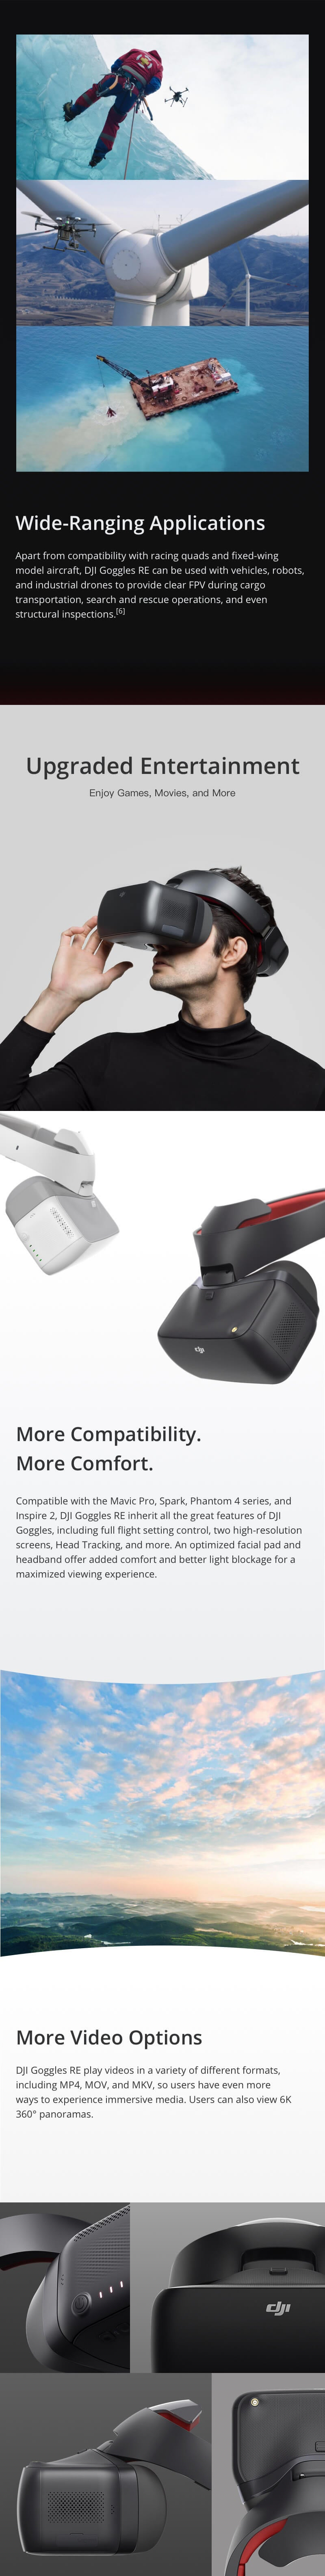 dji-re-goggles-description-3